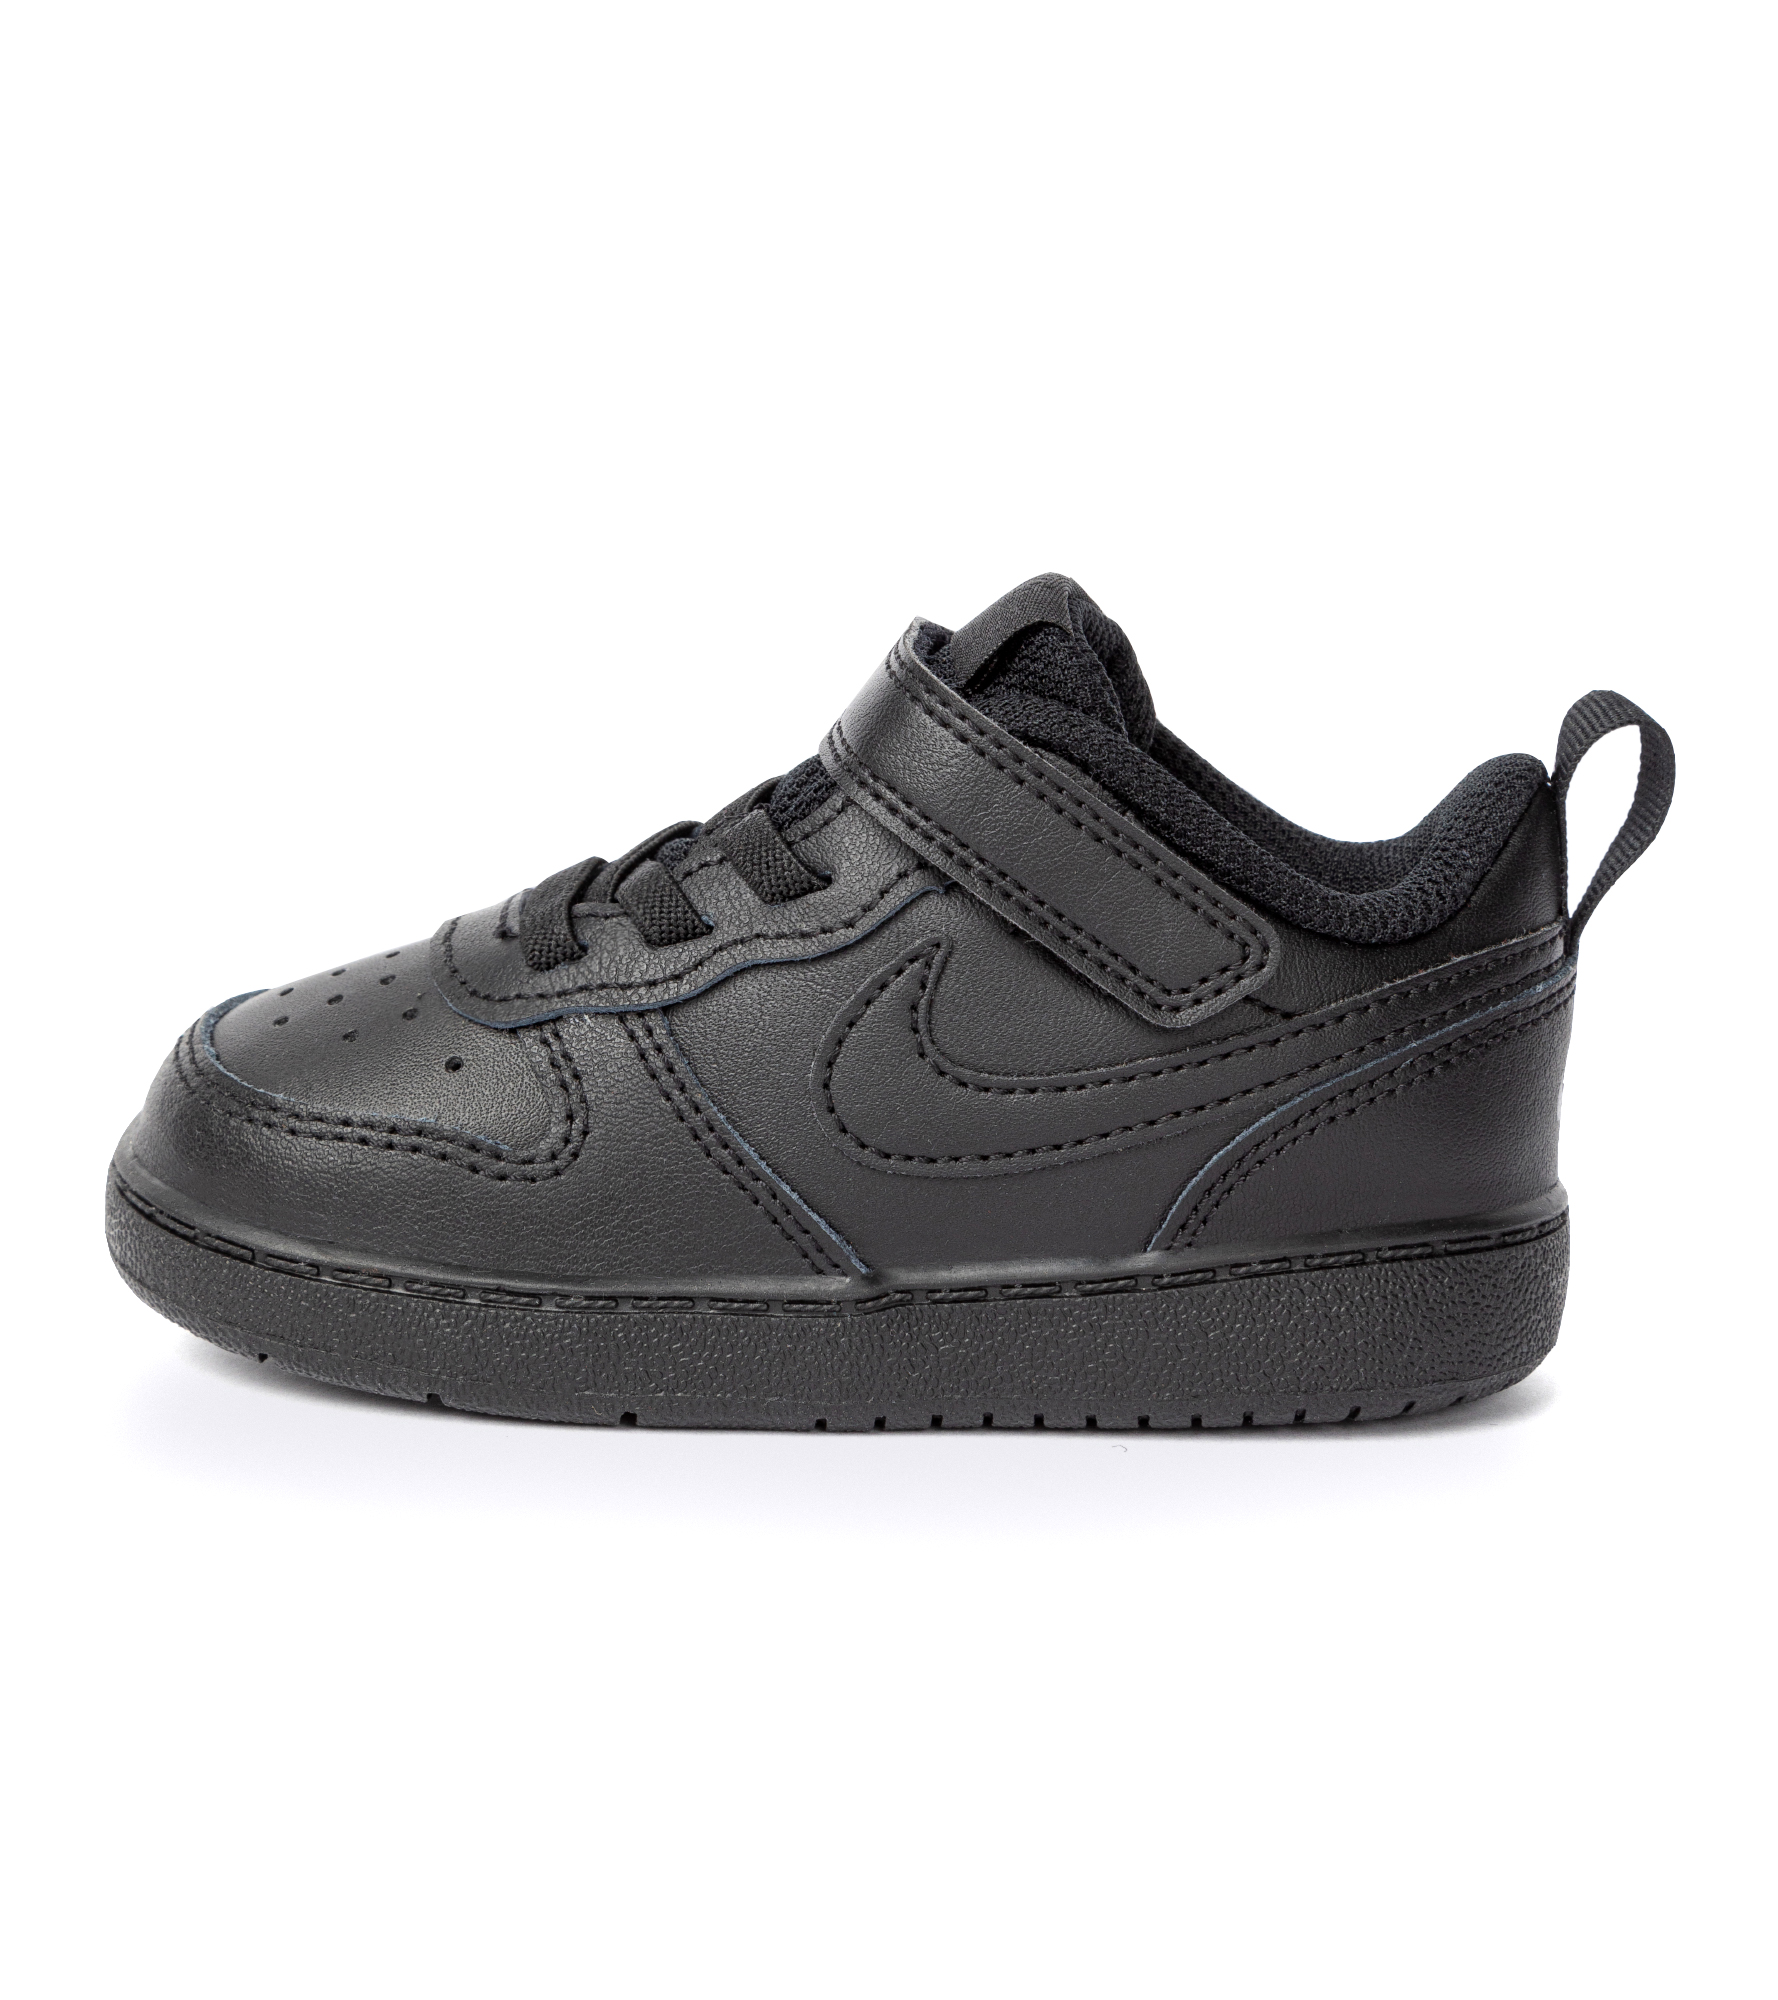 Nike Кеды для мальчиков Nike Court Borough Low 2 (TDV), размер 24 кеды nike кеды nike court borough mid td